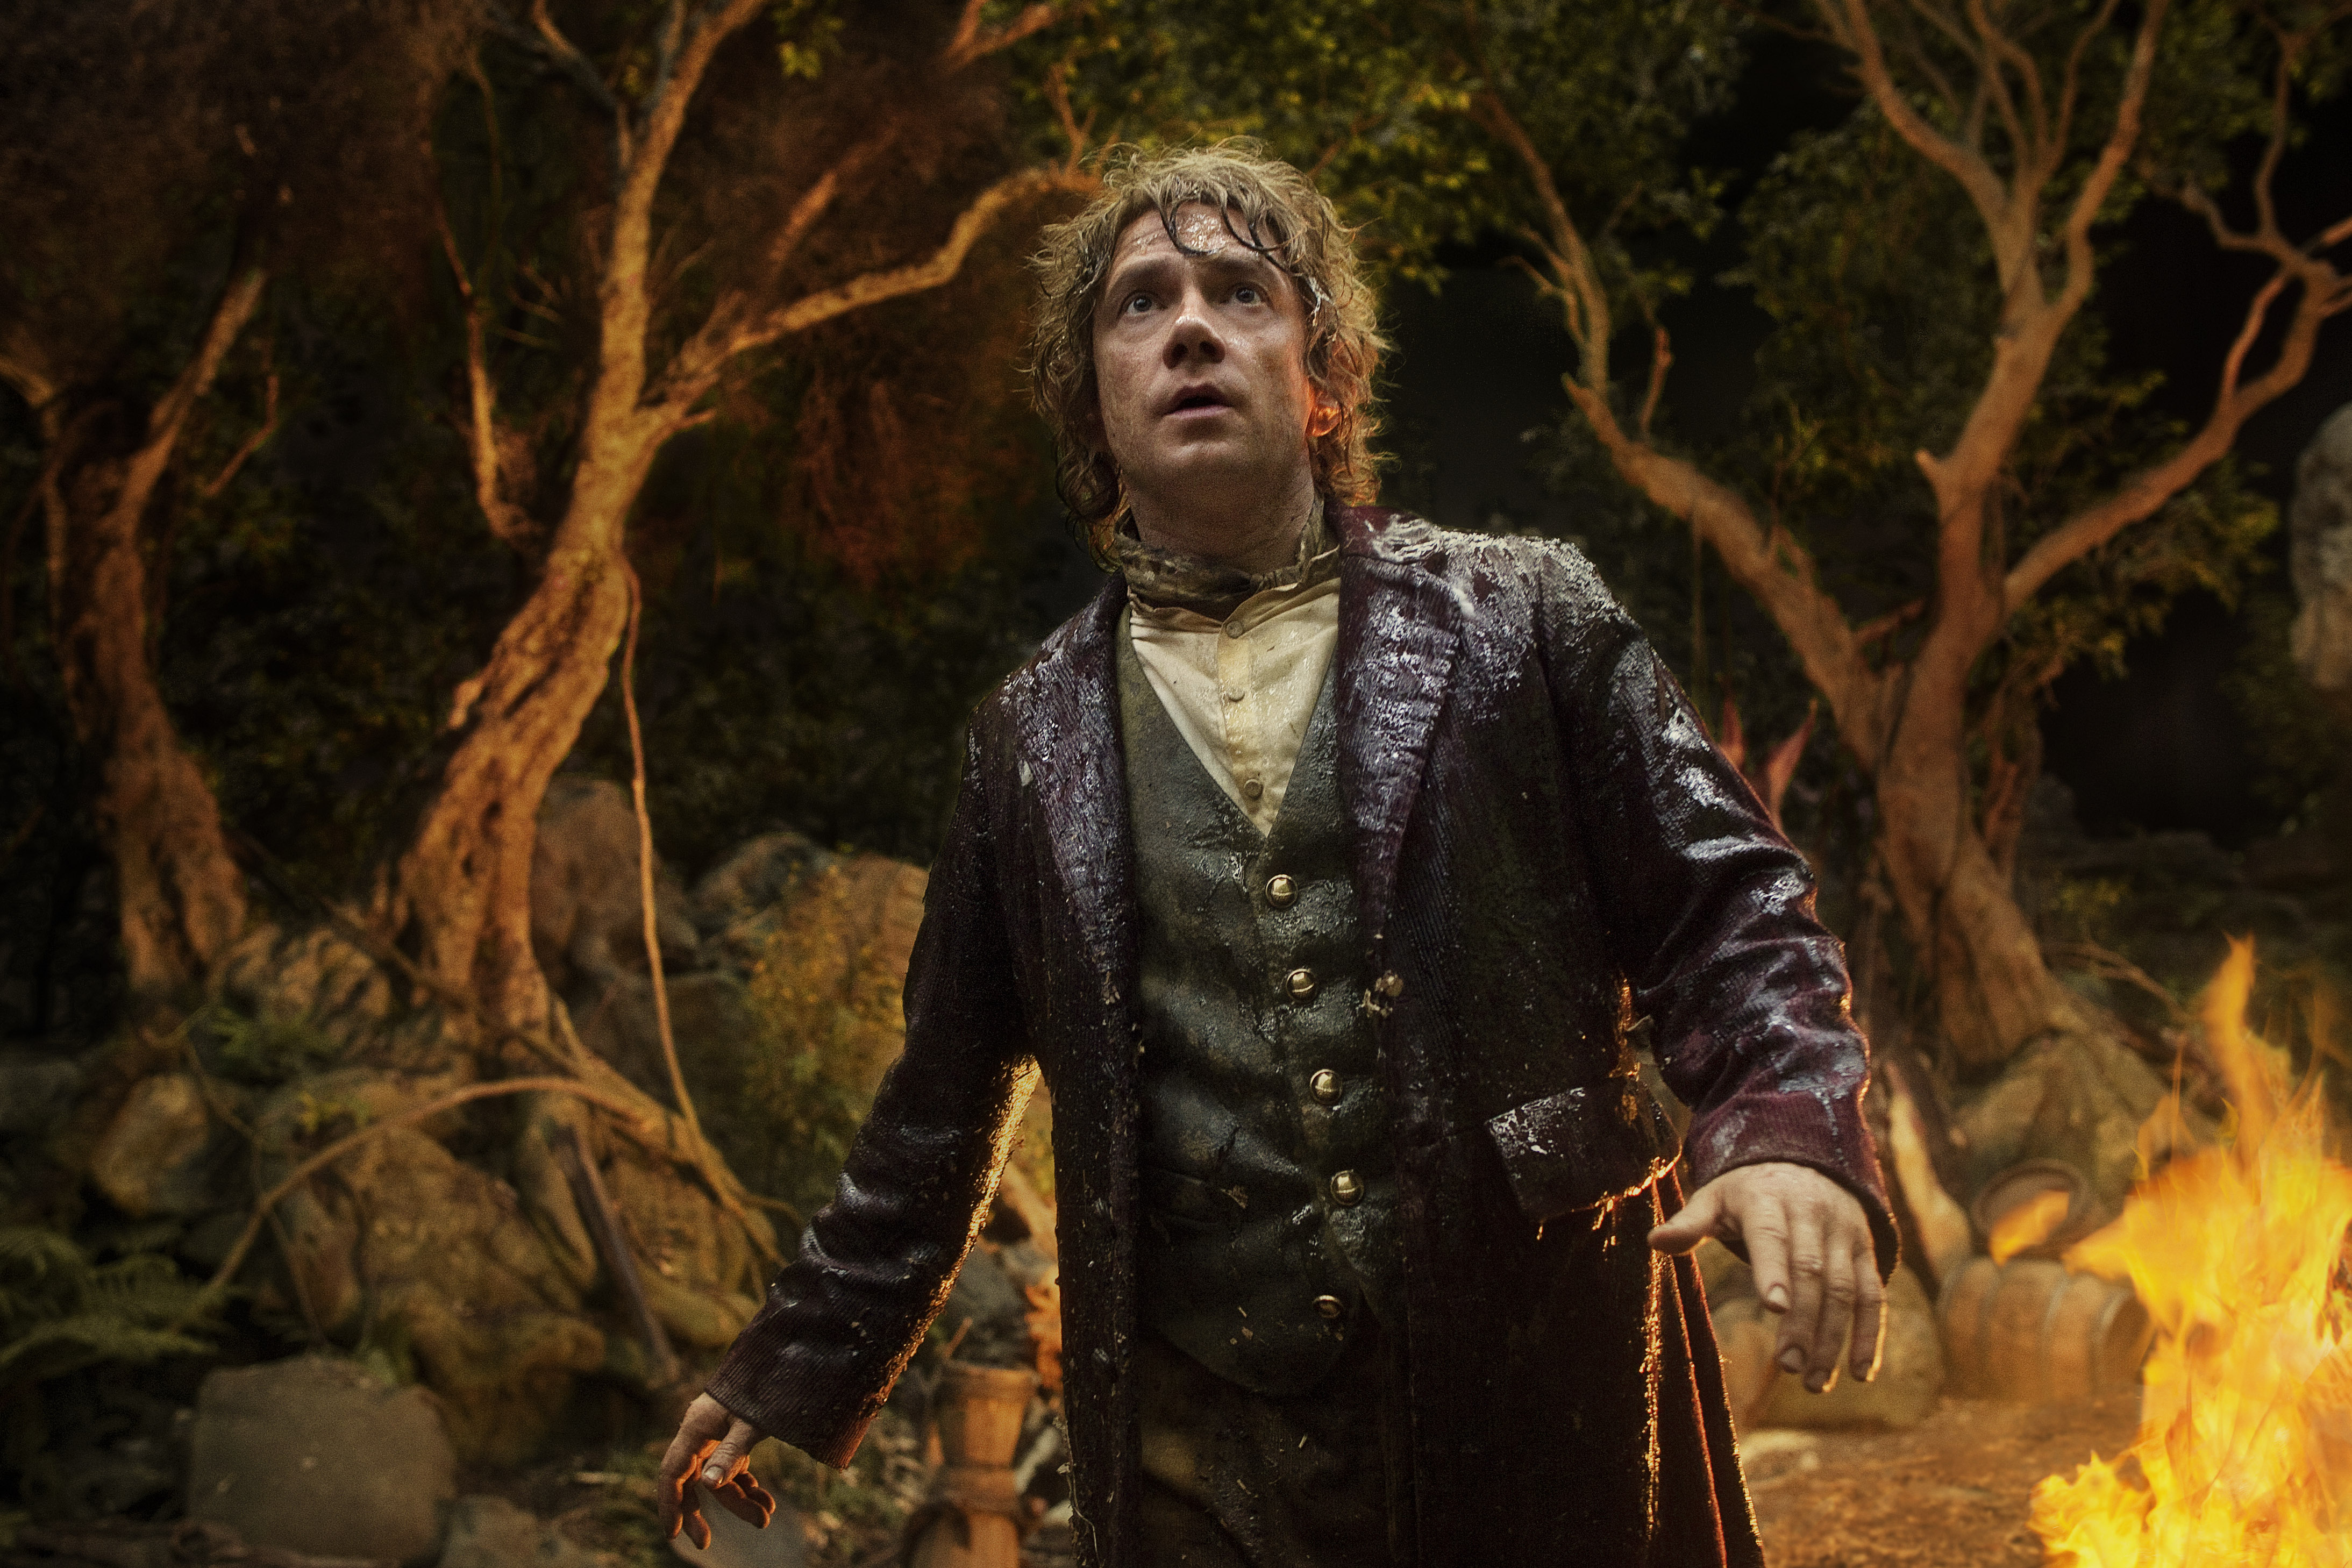 The Hobbit: An Unexpected Journey (2012), directed by Peter Jackson and starring Martin Freeman and Ian McKellen.